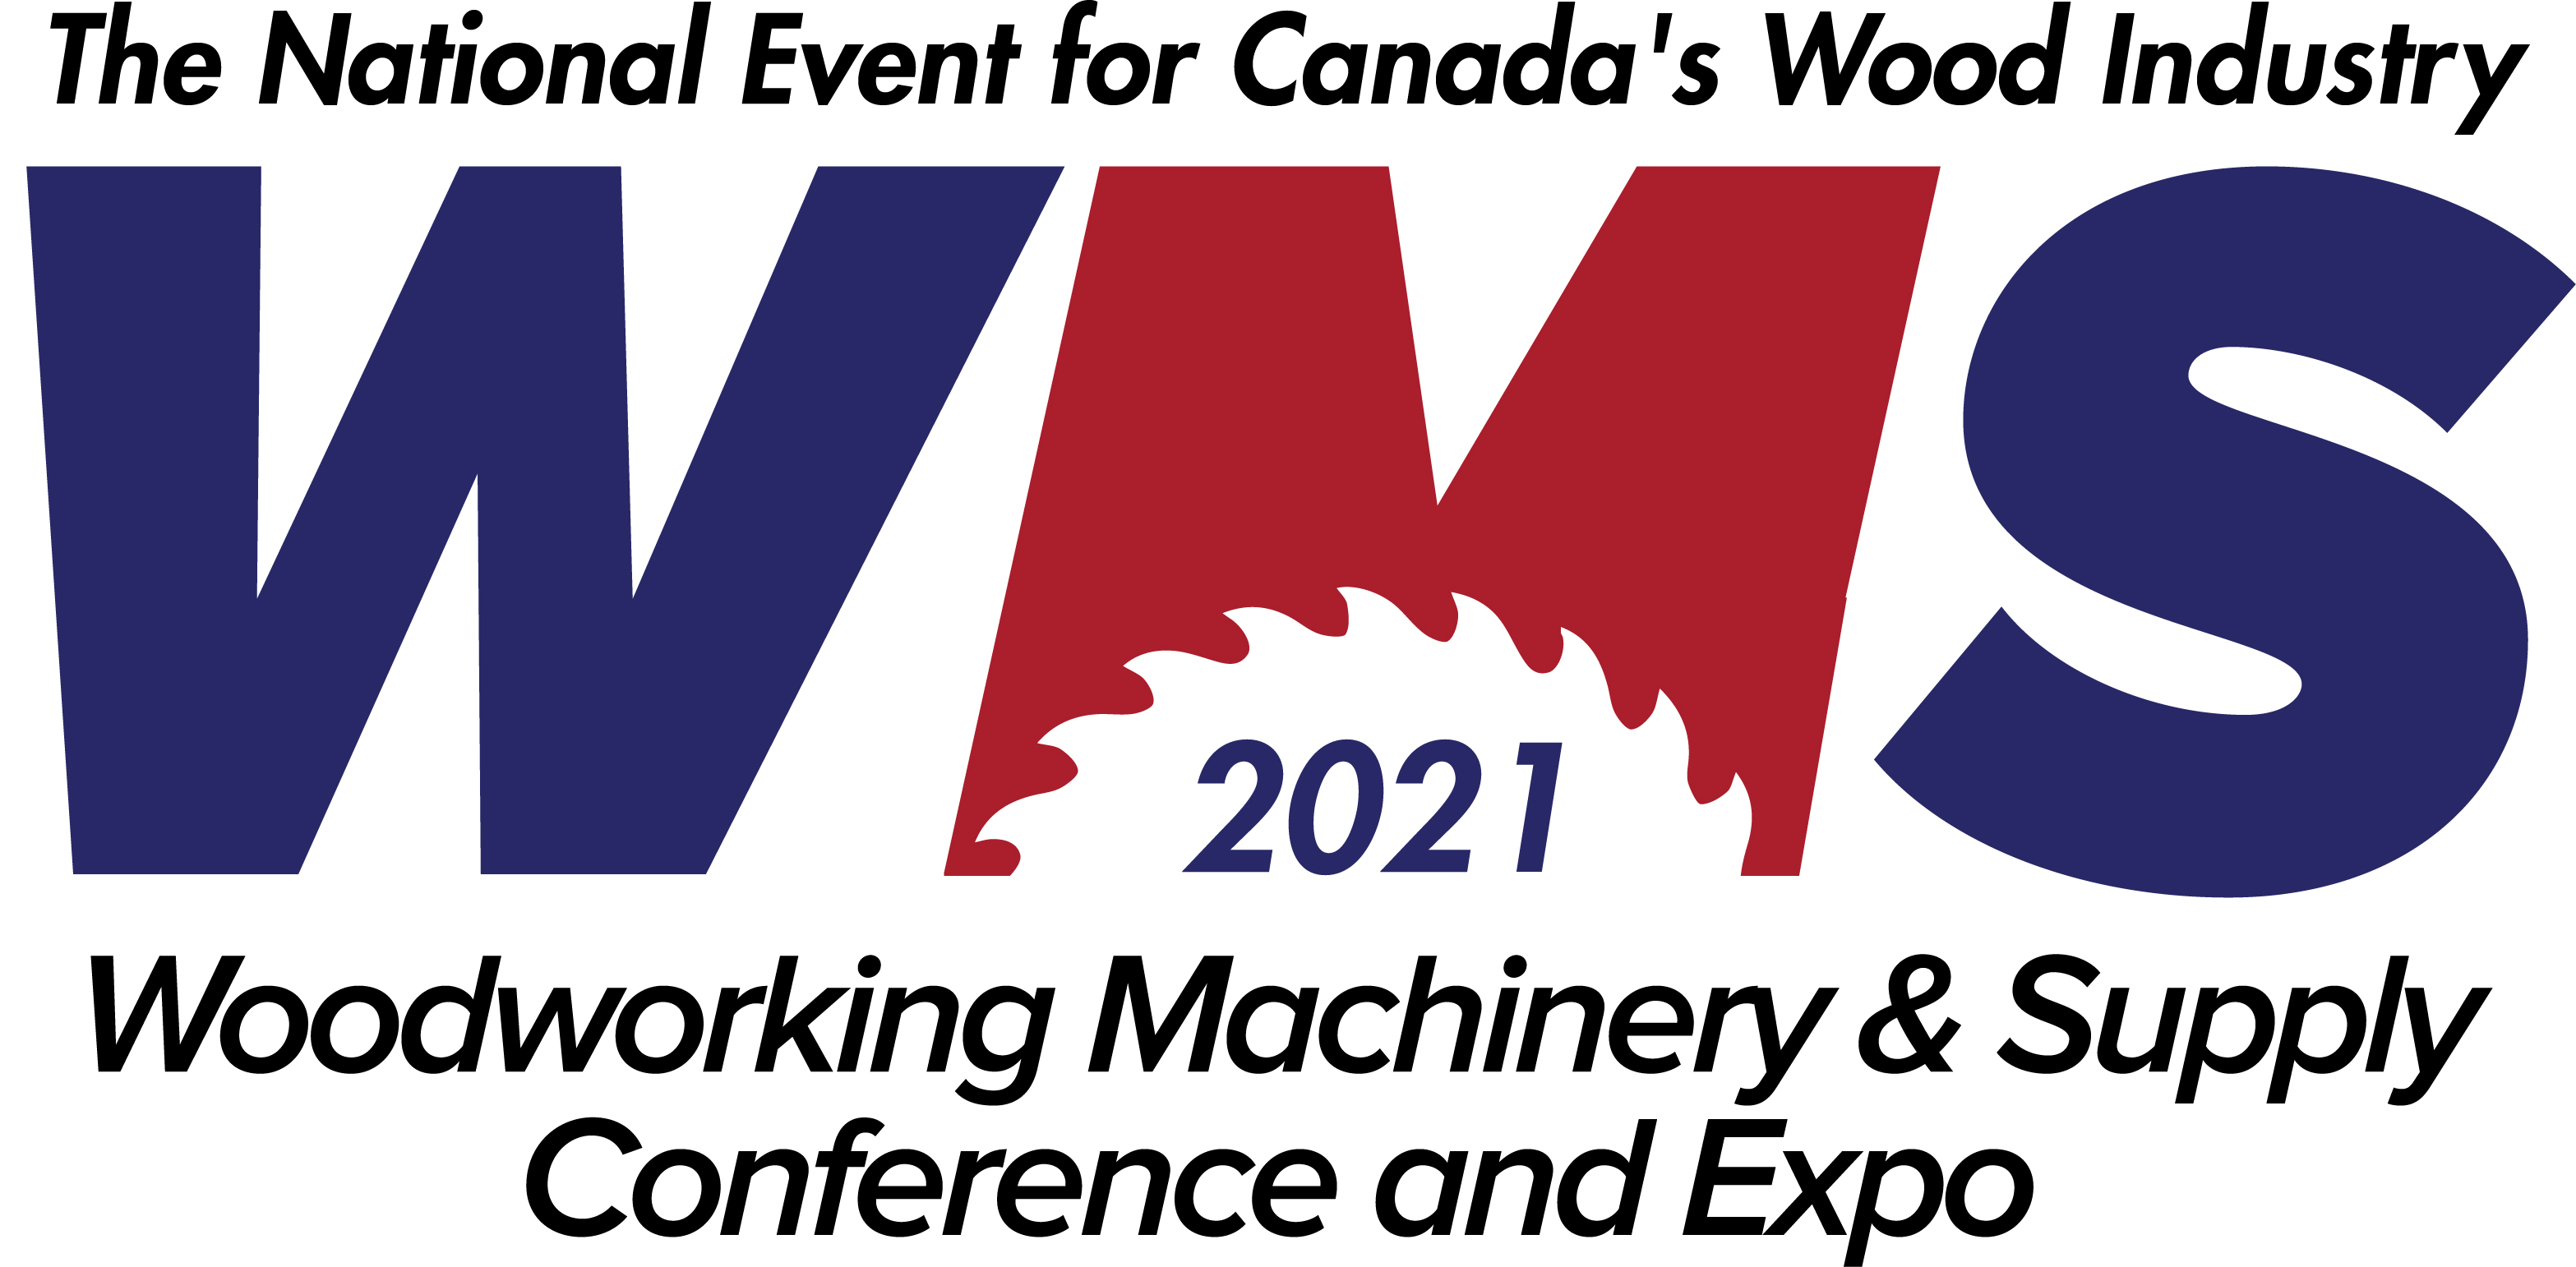 [POSTPONED - NEW DATES TBA] Woodworking Machinery & Supply Conference & Expo